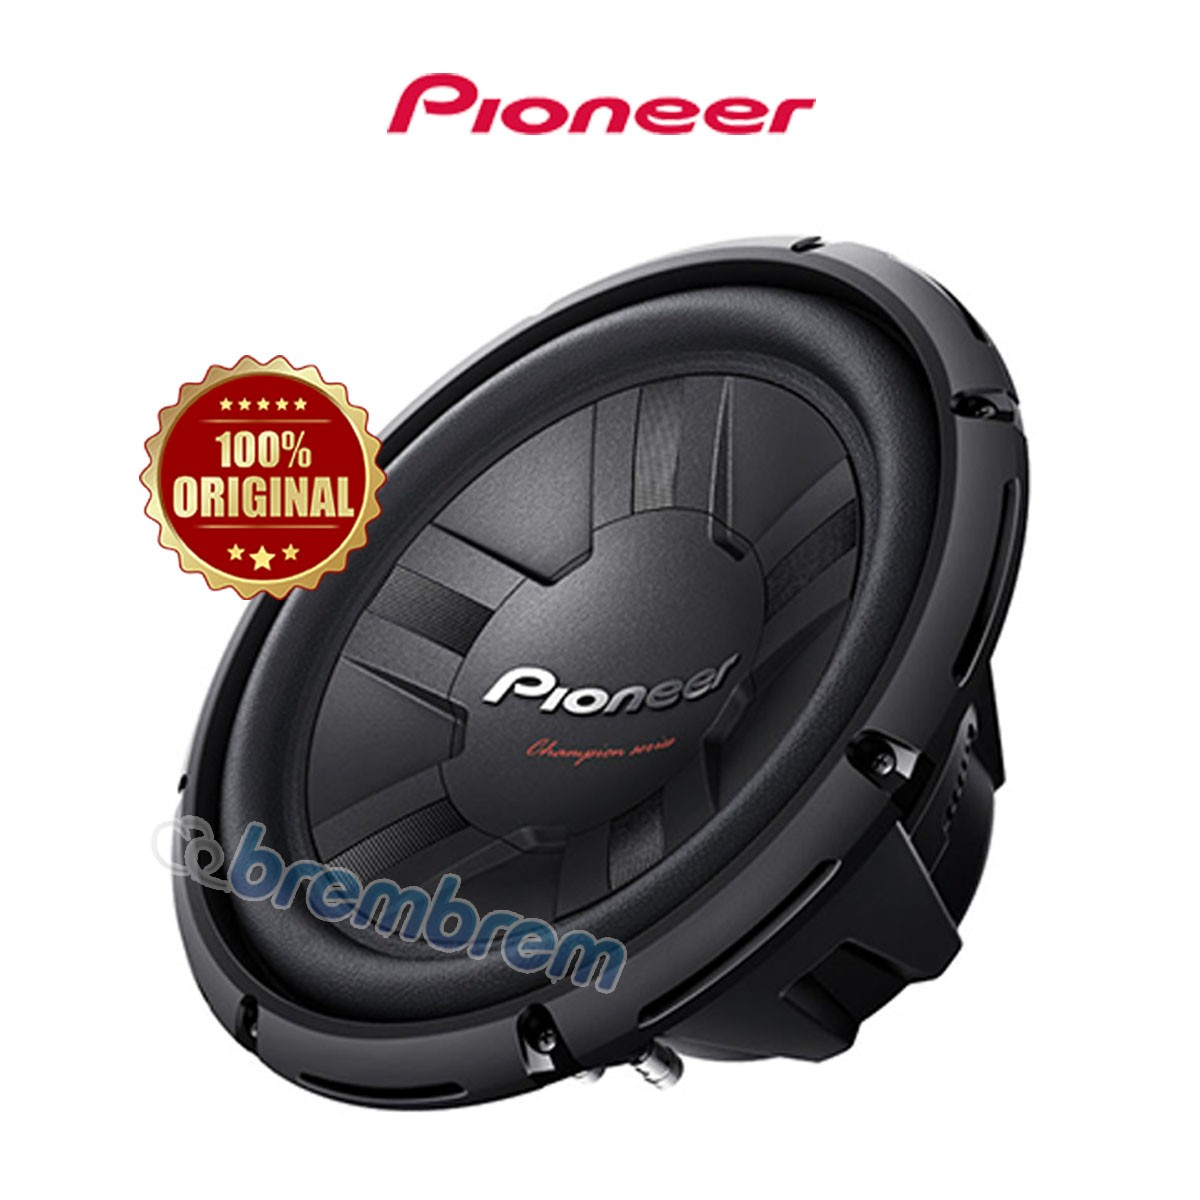 PIONEER TS W311D4 - SUBWOOFER PASIF